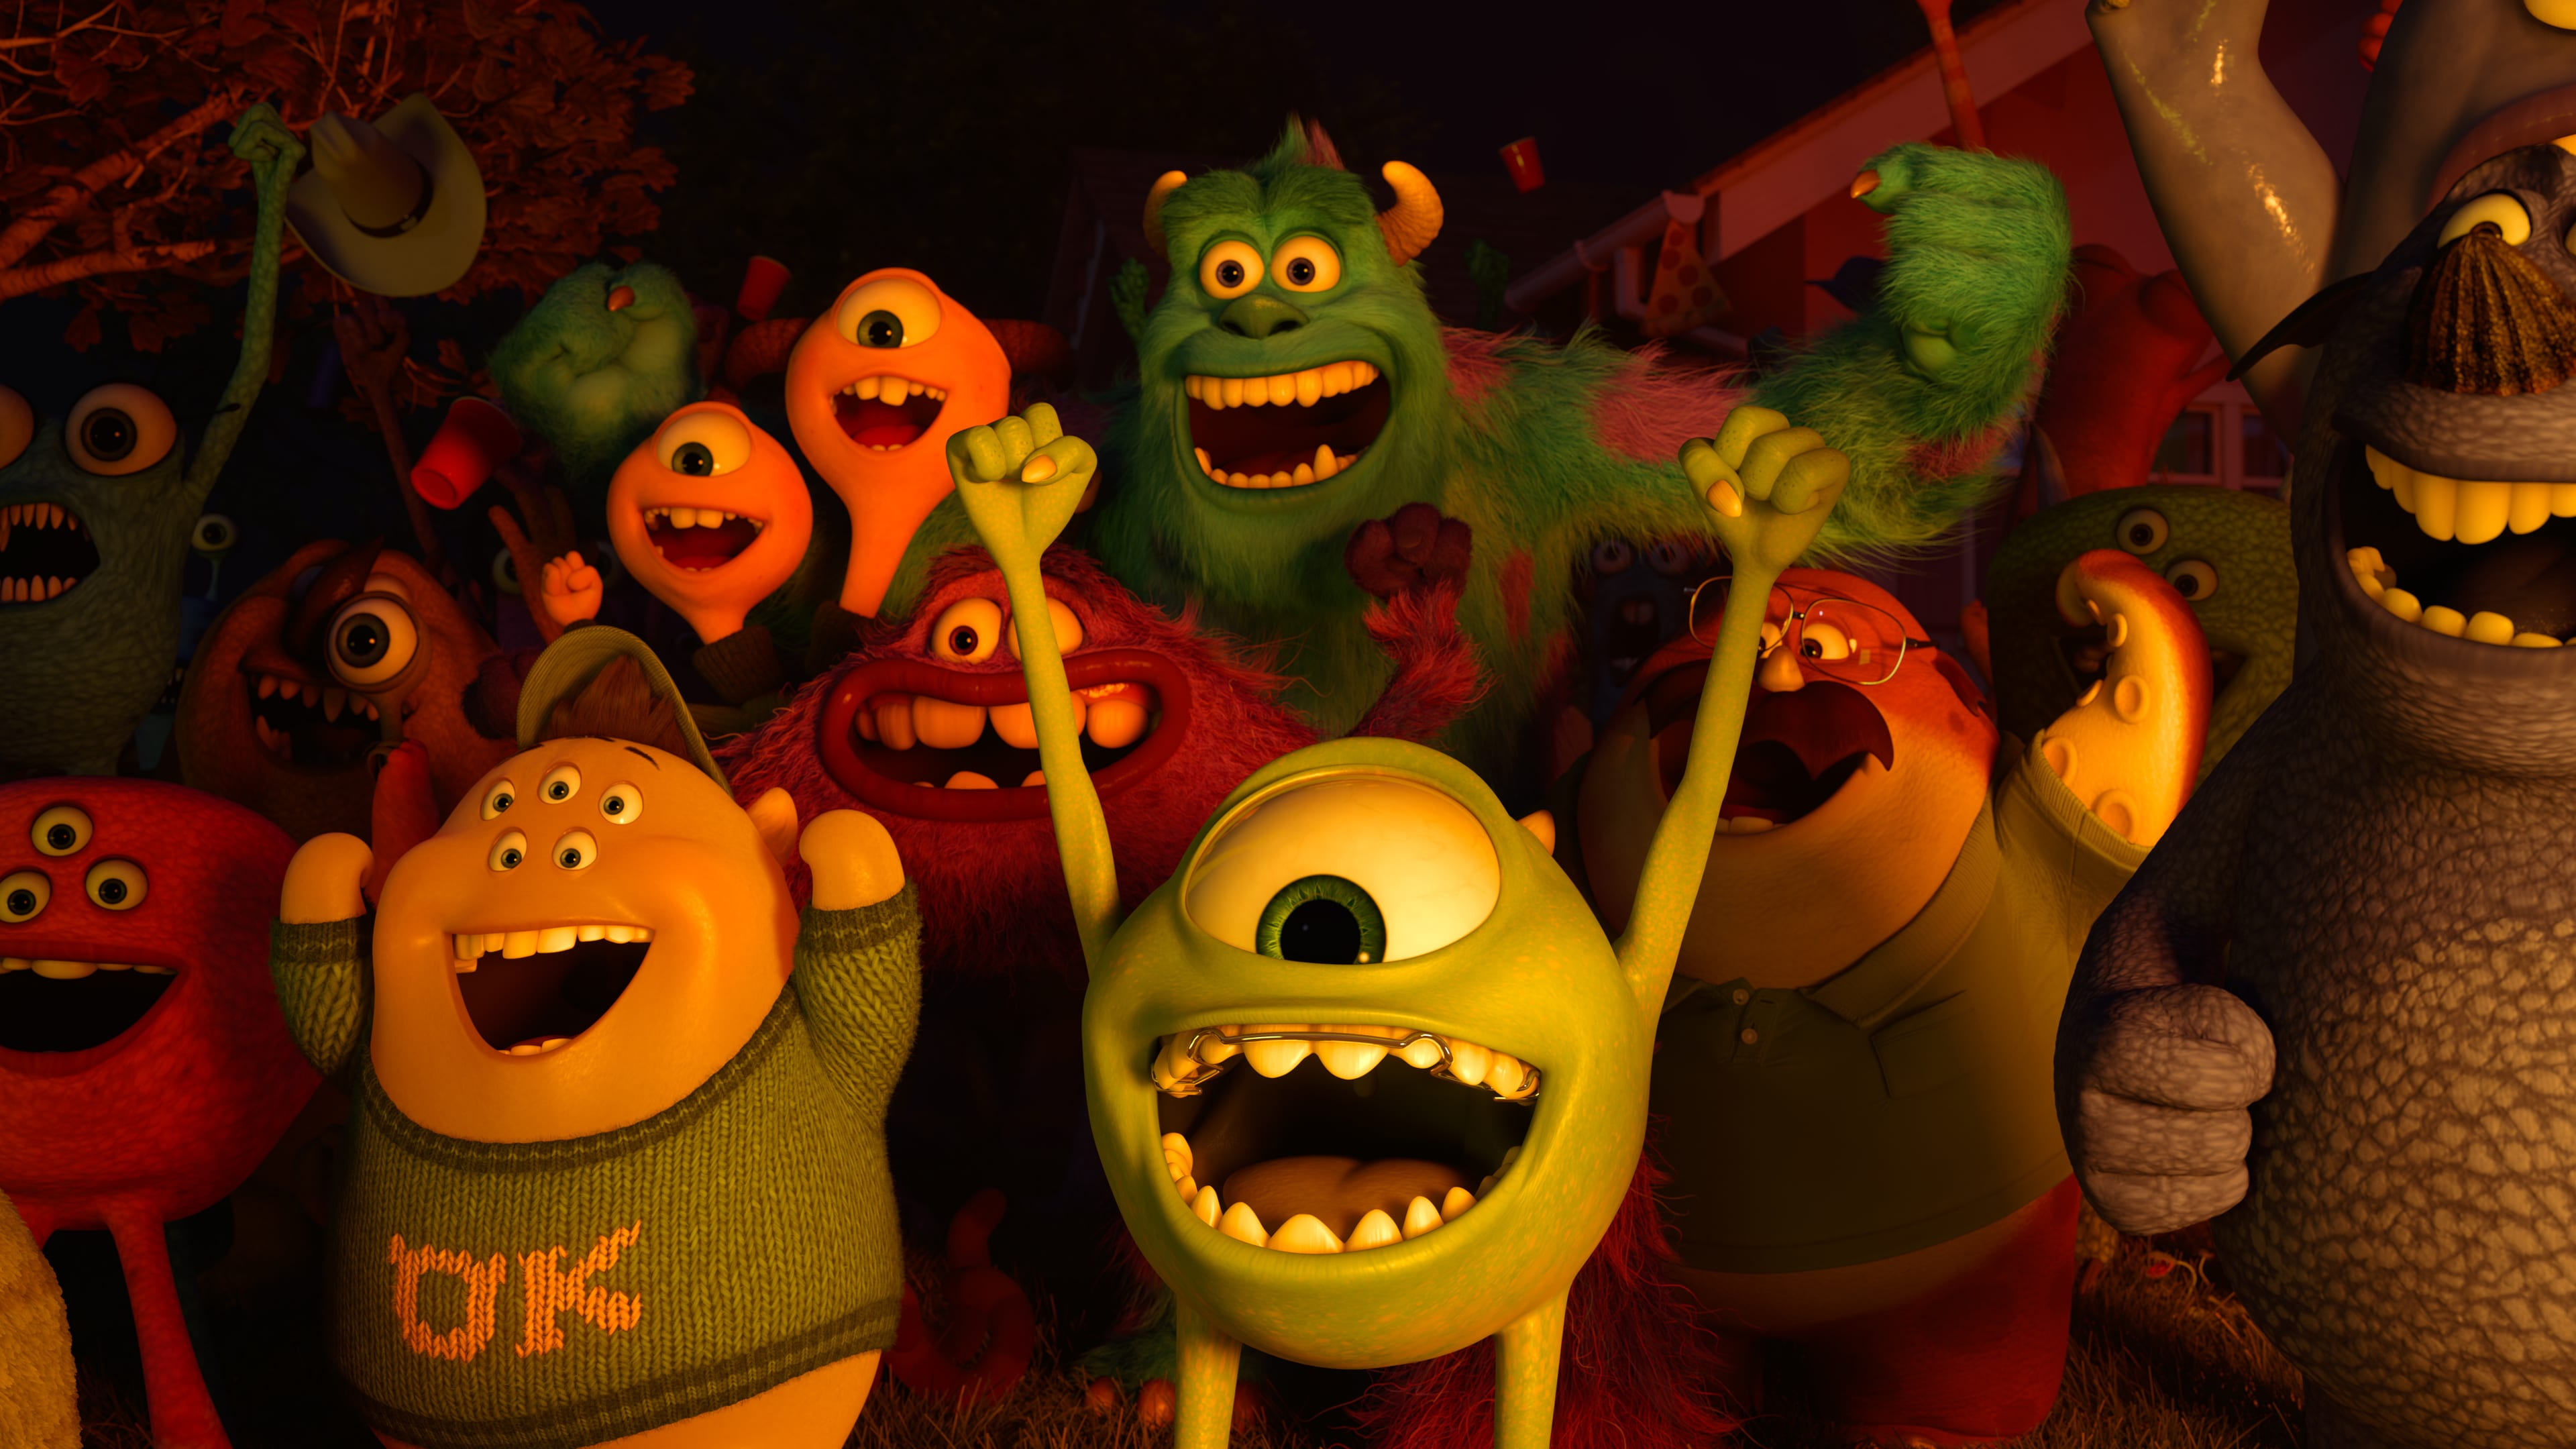 Mike (voiced by Billy Crystal), Sully (voiced by John Goodman), Terry (voiced by Dave Foley), Terri (voiced by Sean Hayes), Art (voiced by Charlie Day), Don (voiced by Joel Murray), and Squishy (voiced by Peter Sohn) in the Disney•Pixar movie Party Central.